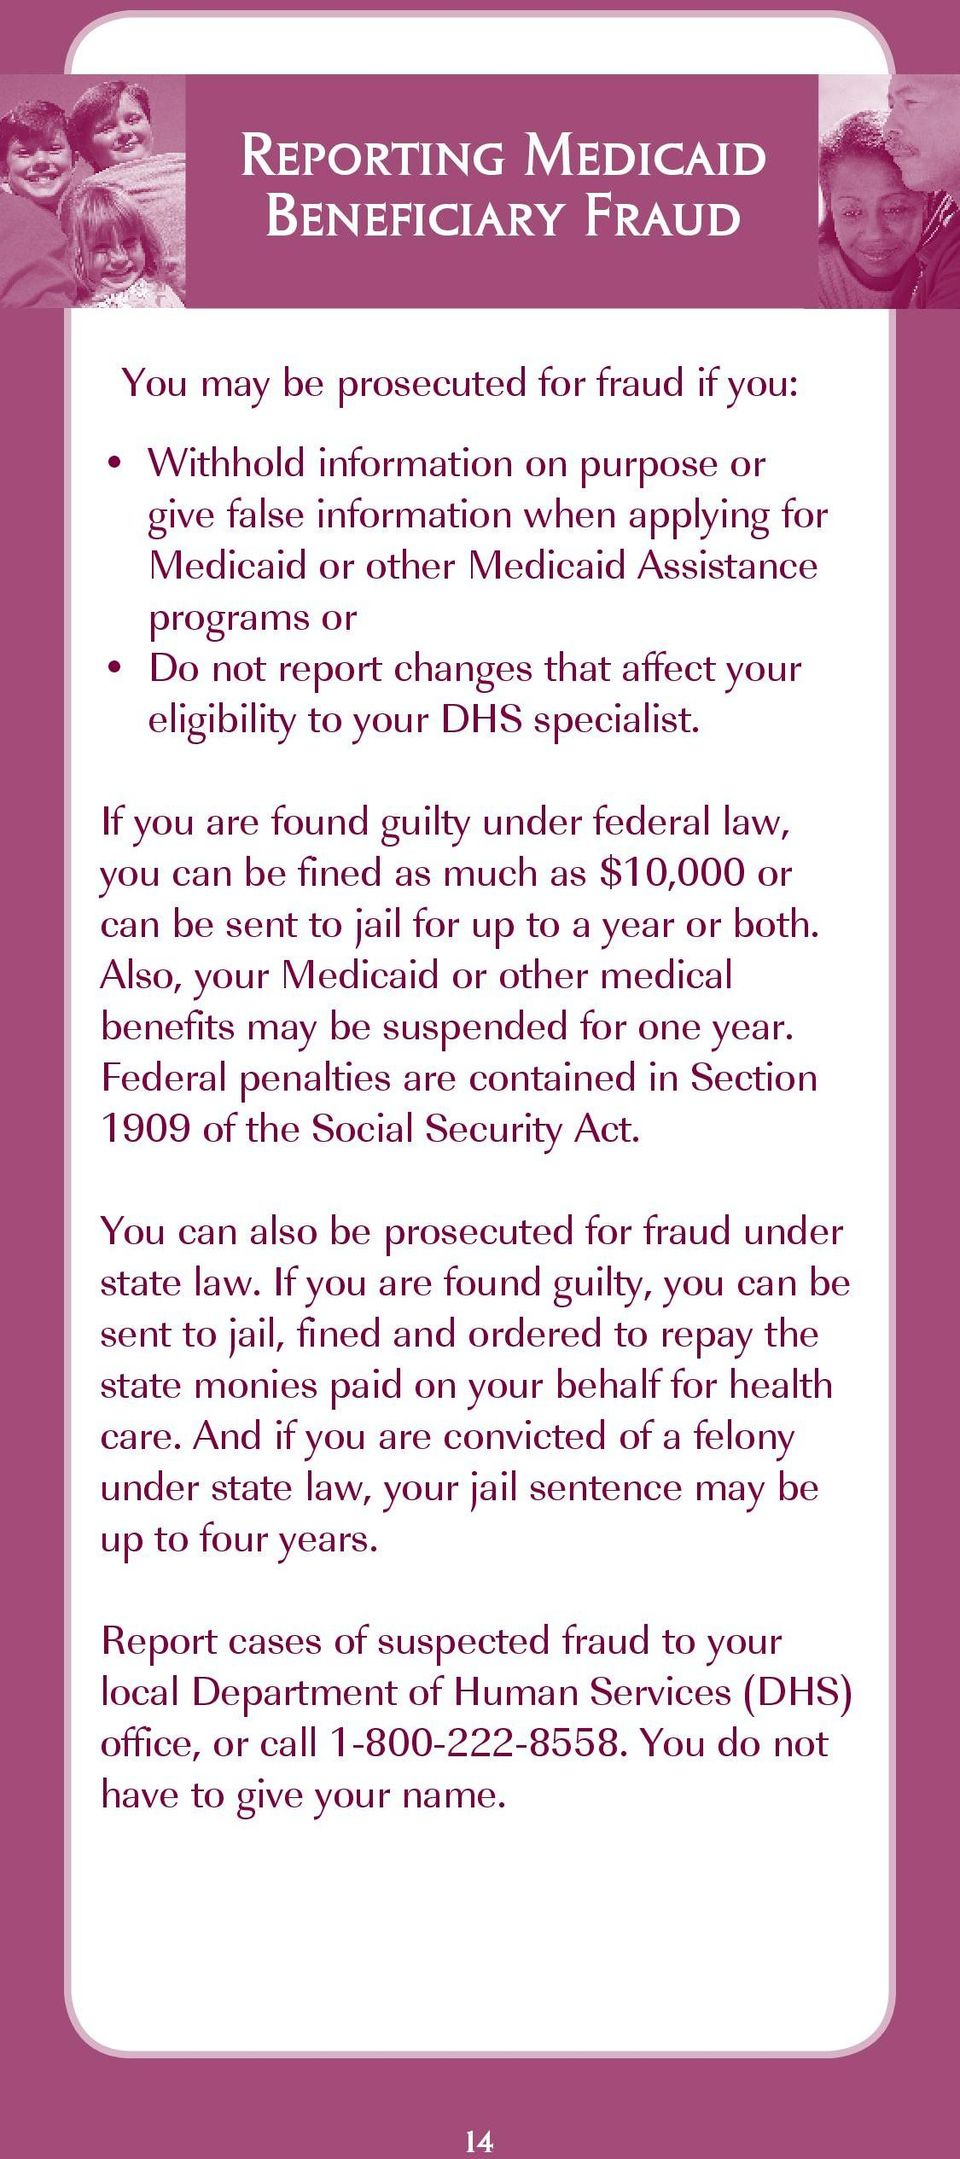 If you are found guilty under federal law, you can be fined as much as $10,000 or can be sent to jail for up to a year or both.